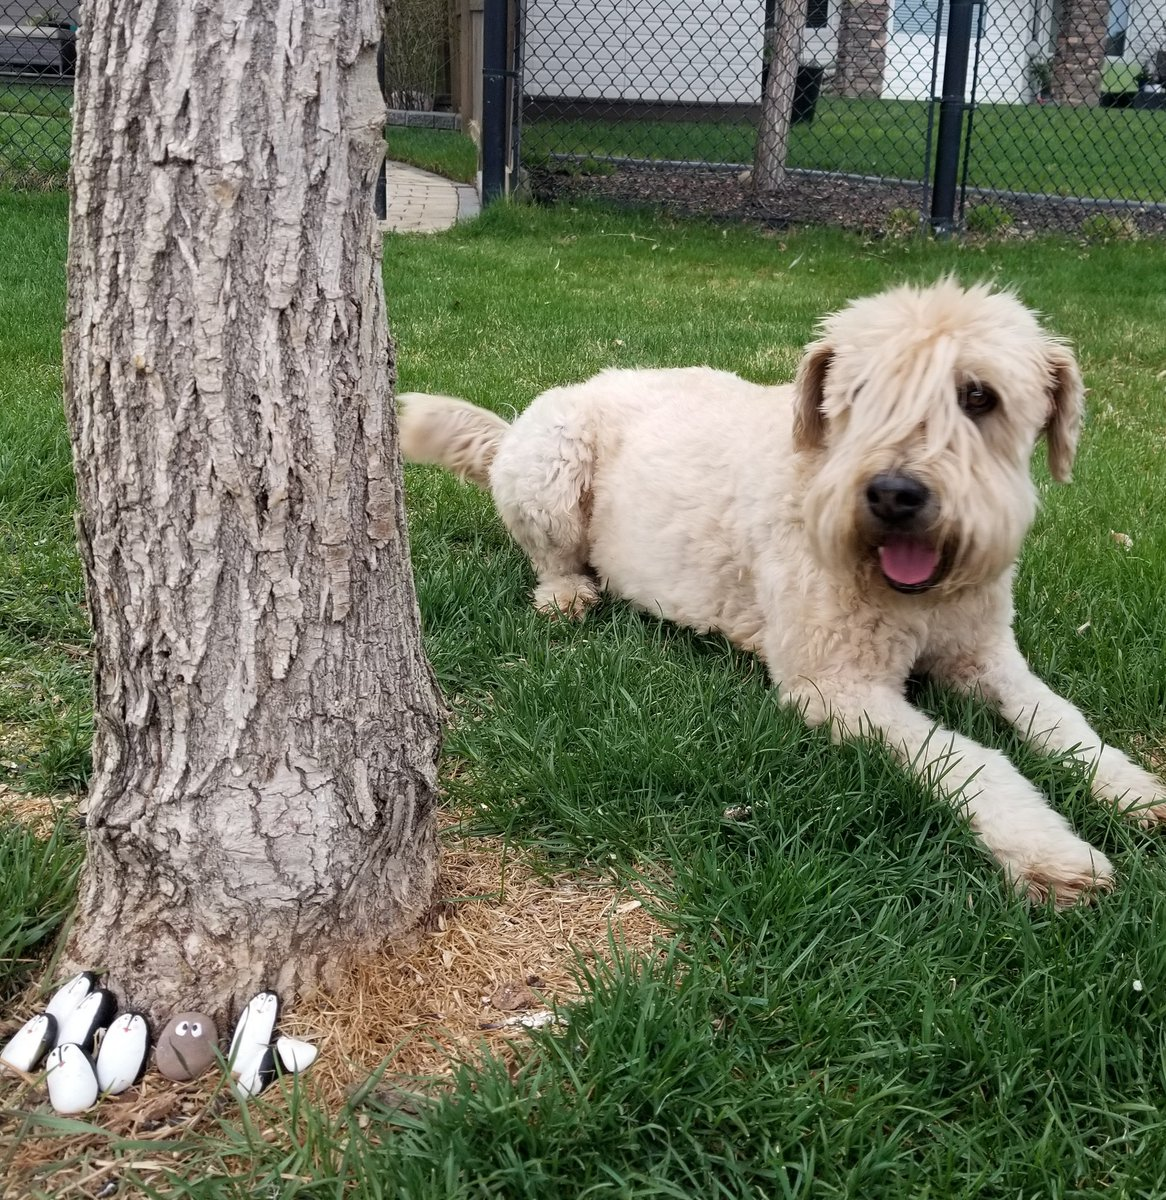 Someone left some painted rocks by the tree outside me garden! How nice! #painting #rocks #StayHome #dogsoftwitter #dogs #wheatenterrier #scwtpic.twitter.com/l9eLQLwJ3l